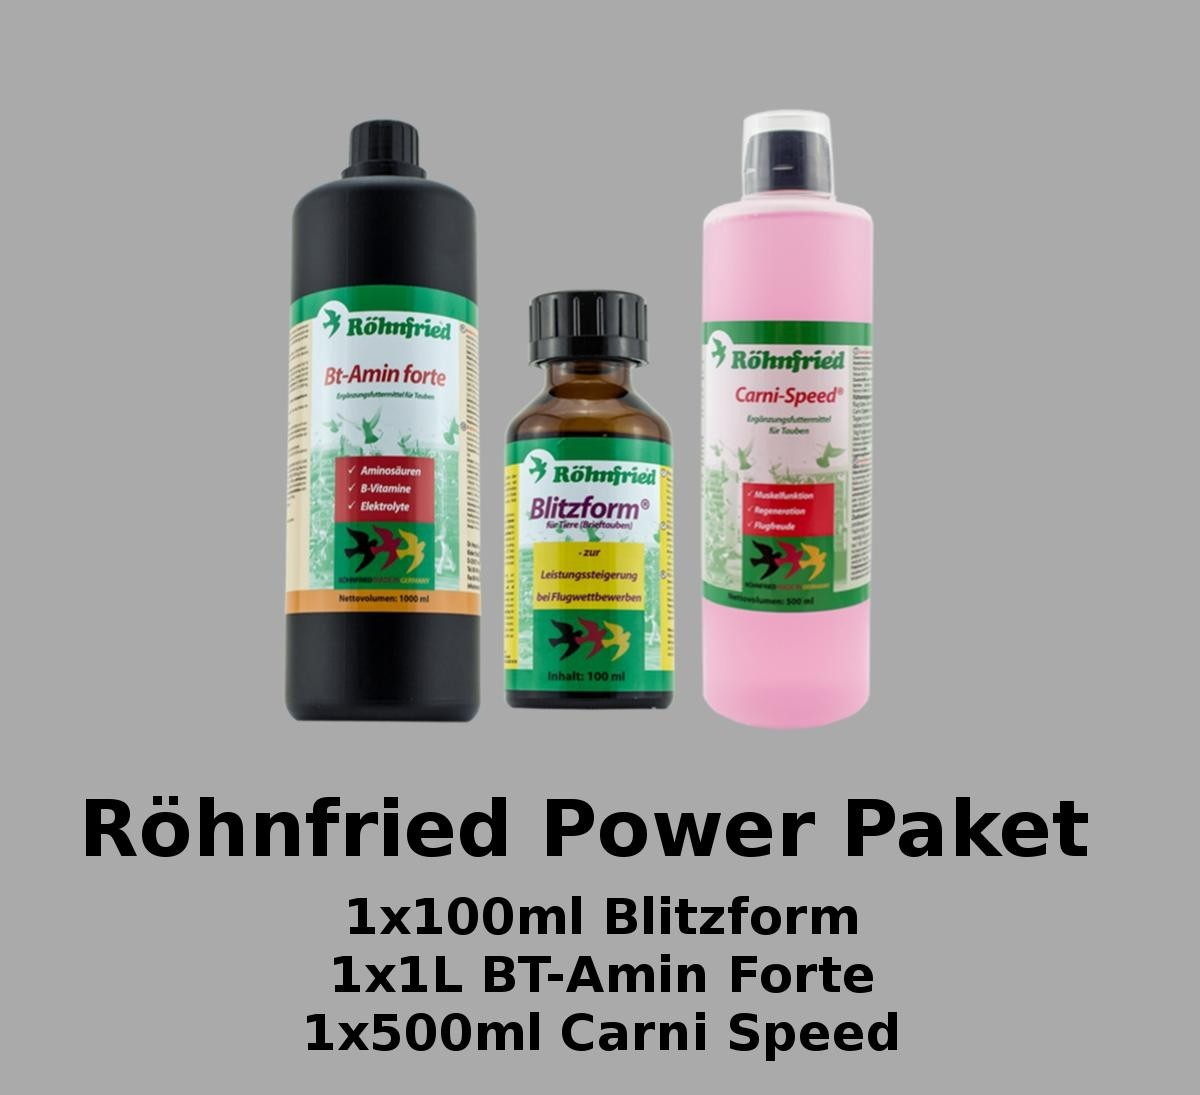 Röhnfried Power Paket